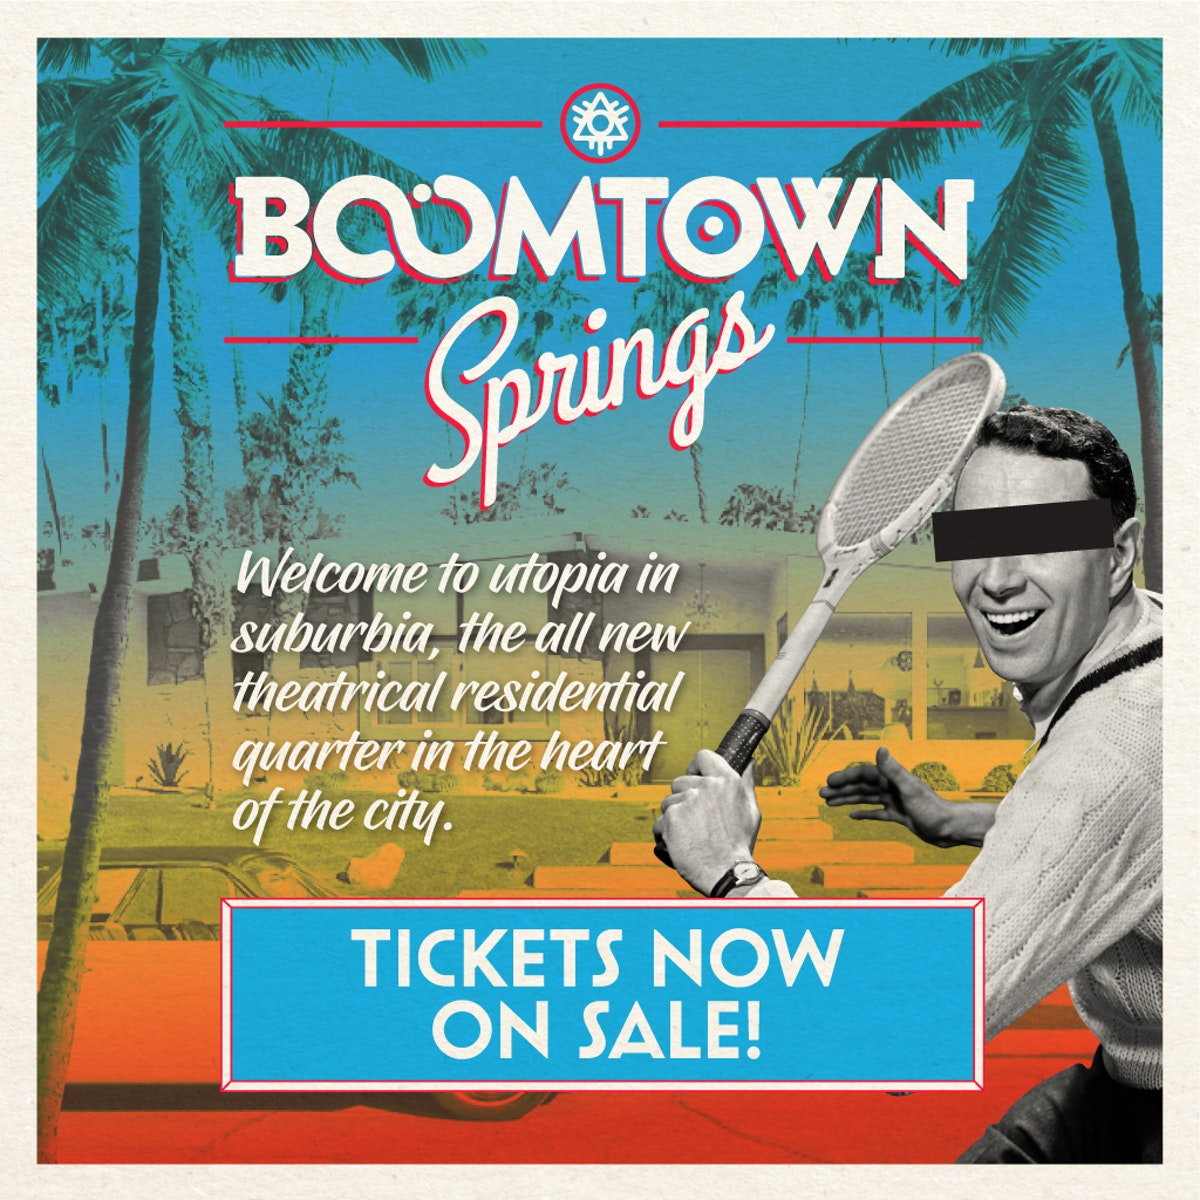 Boomtown Springs Now on Sale!!